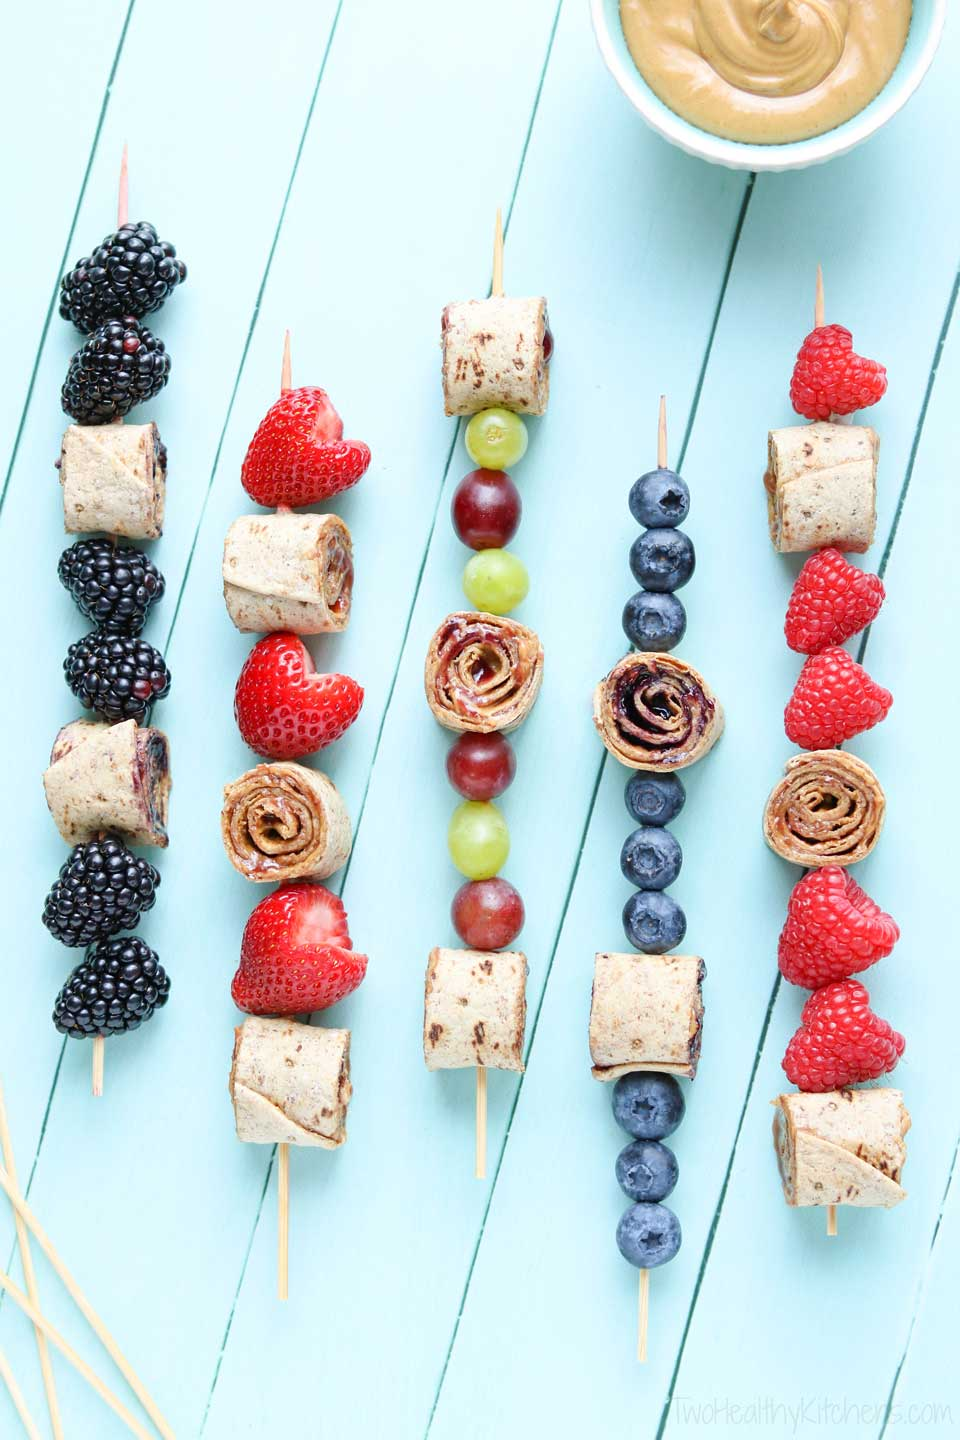 Overhead of pinwheels and fruit skewered on 5 sticks with a bowl of extra peanut butter nearby.